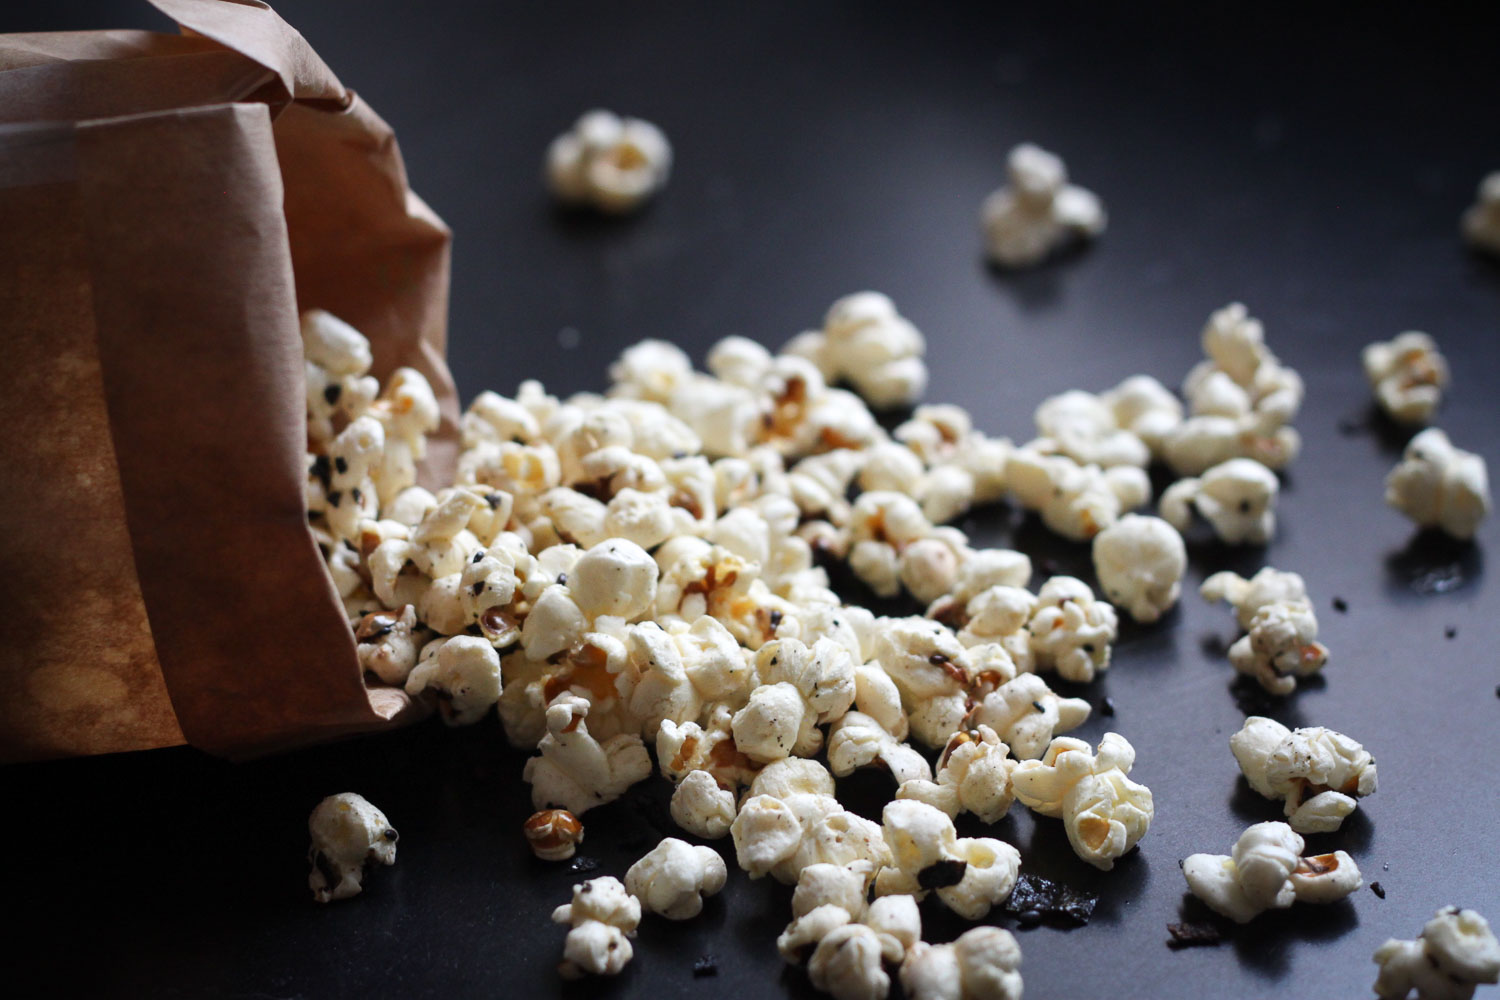 Spilled popcorn for snacking (Eat Me. Drink Me.)